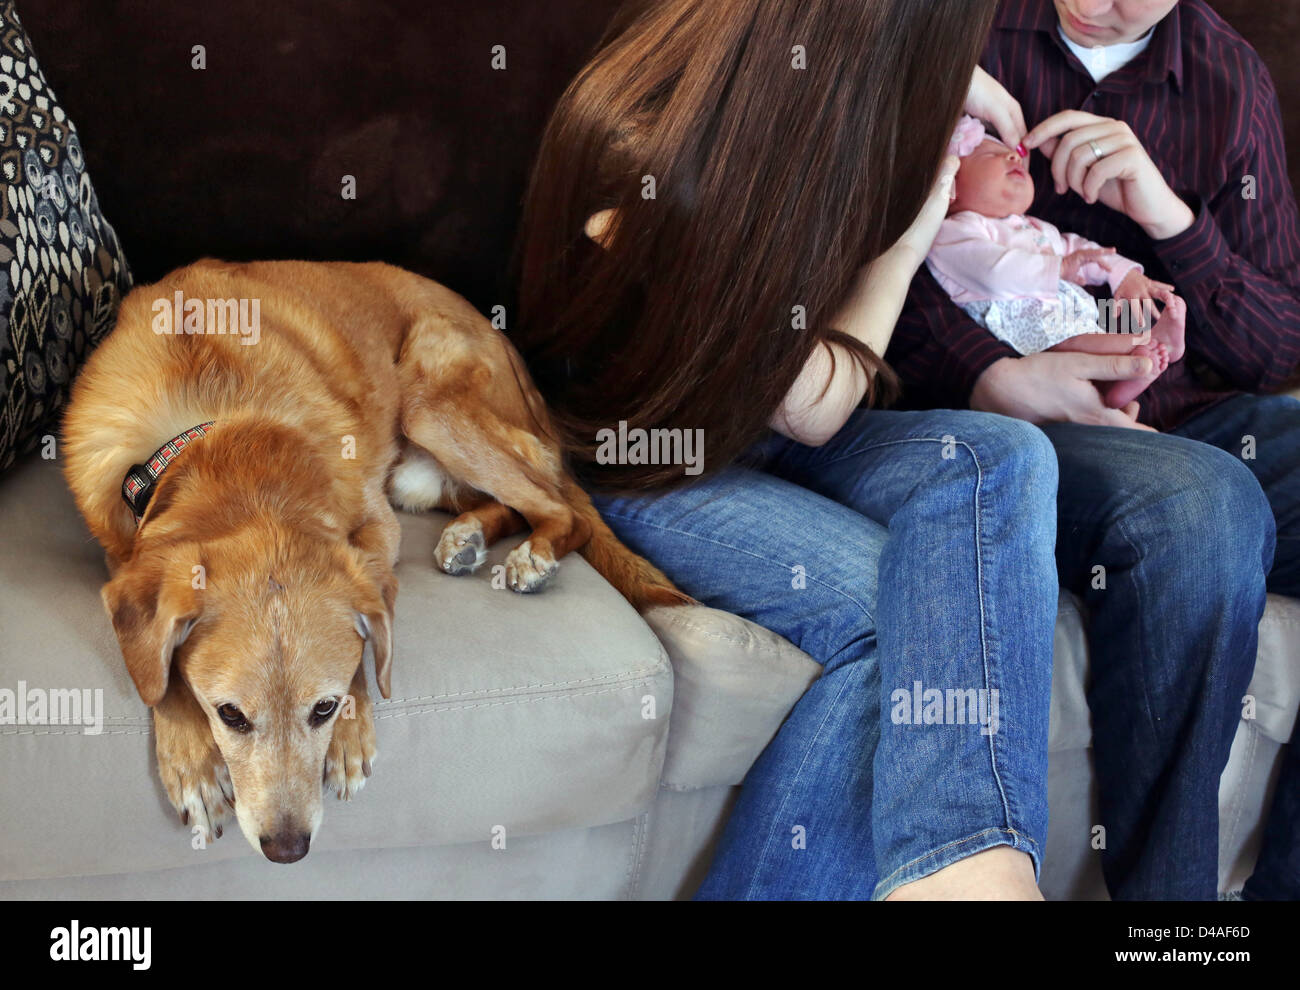 A dog looking jealous and left out while his owners fuss over a new baby. - Stock Image